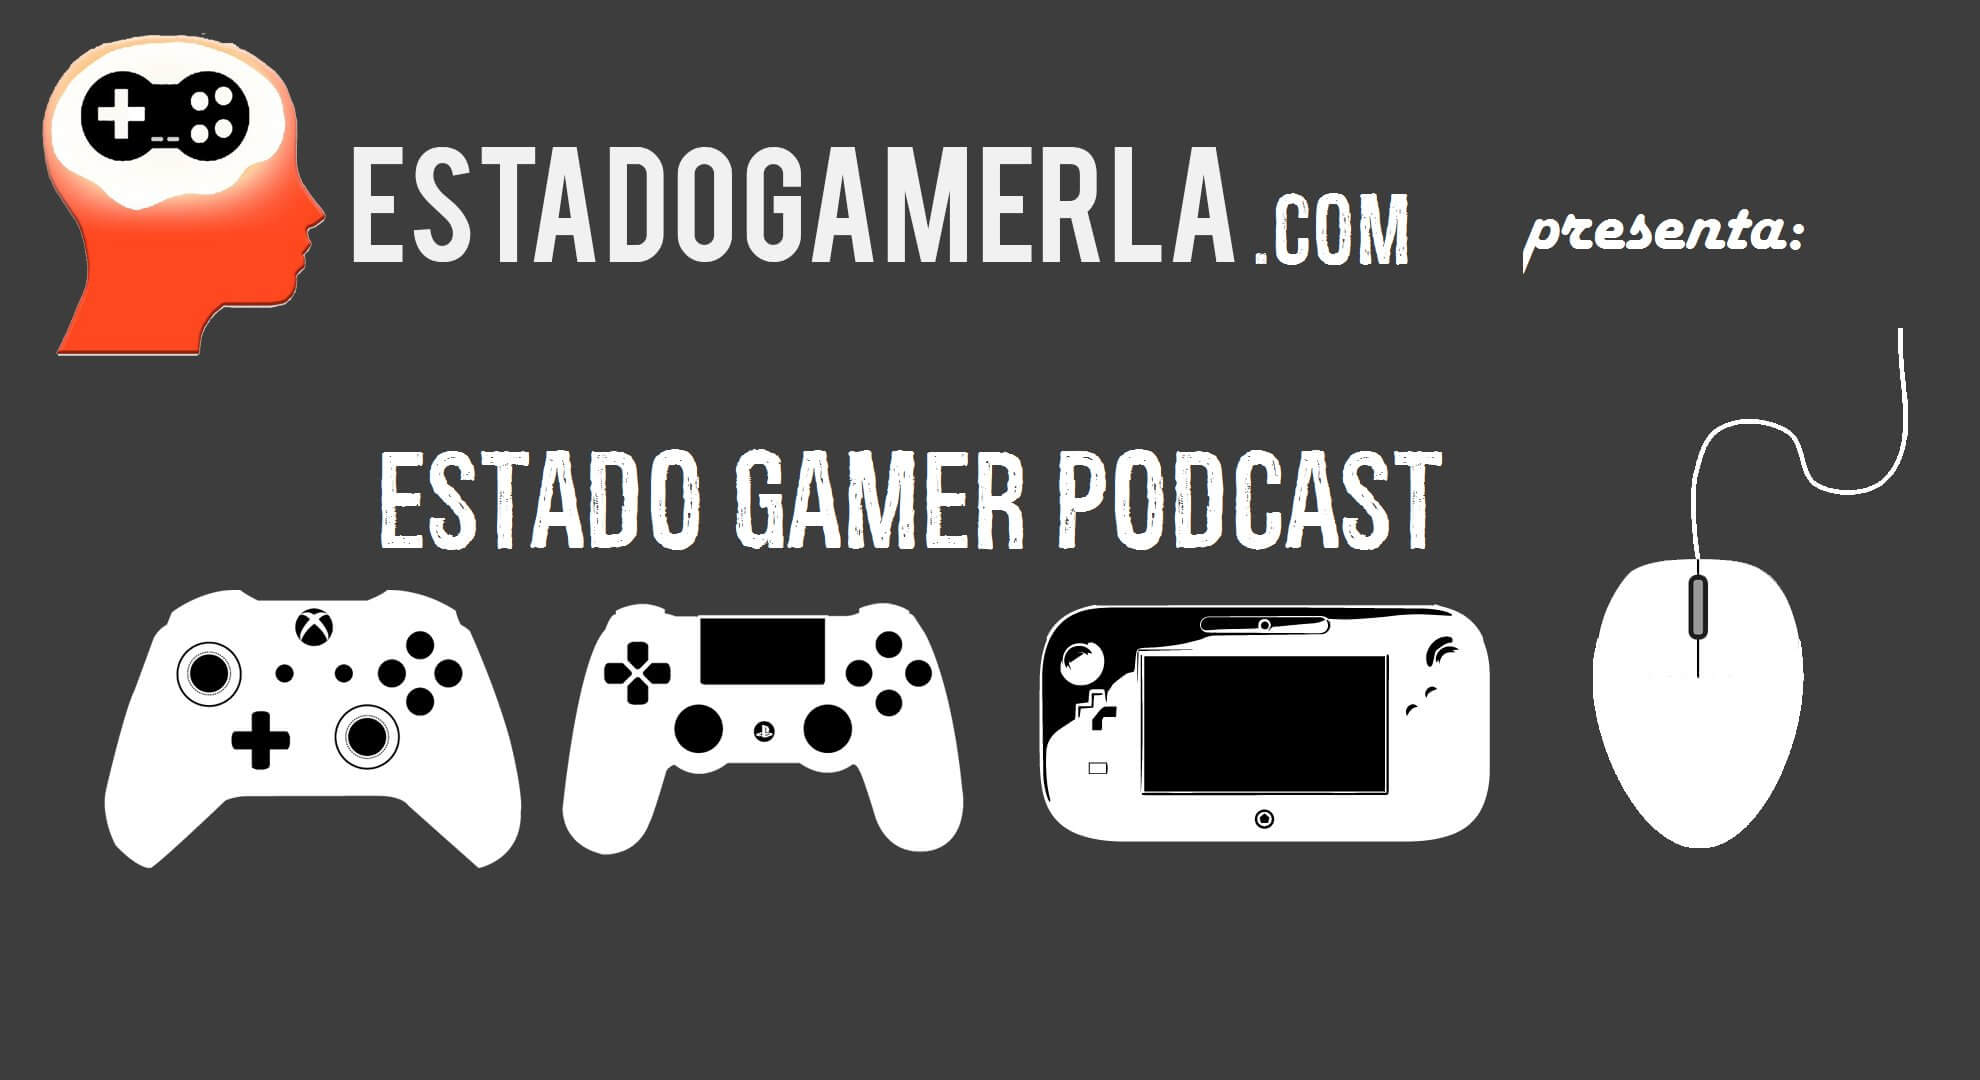 Estado Gamer Podcast